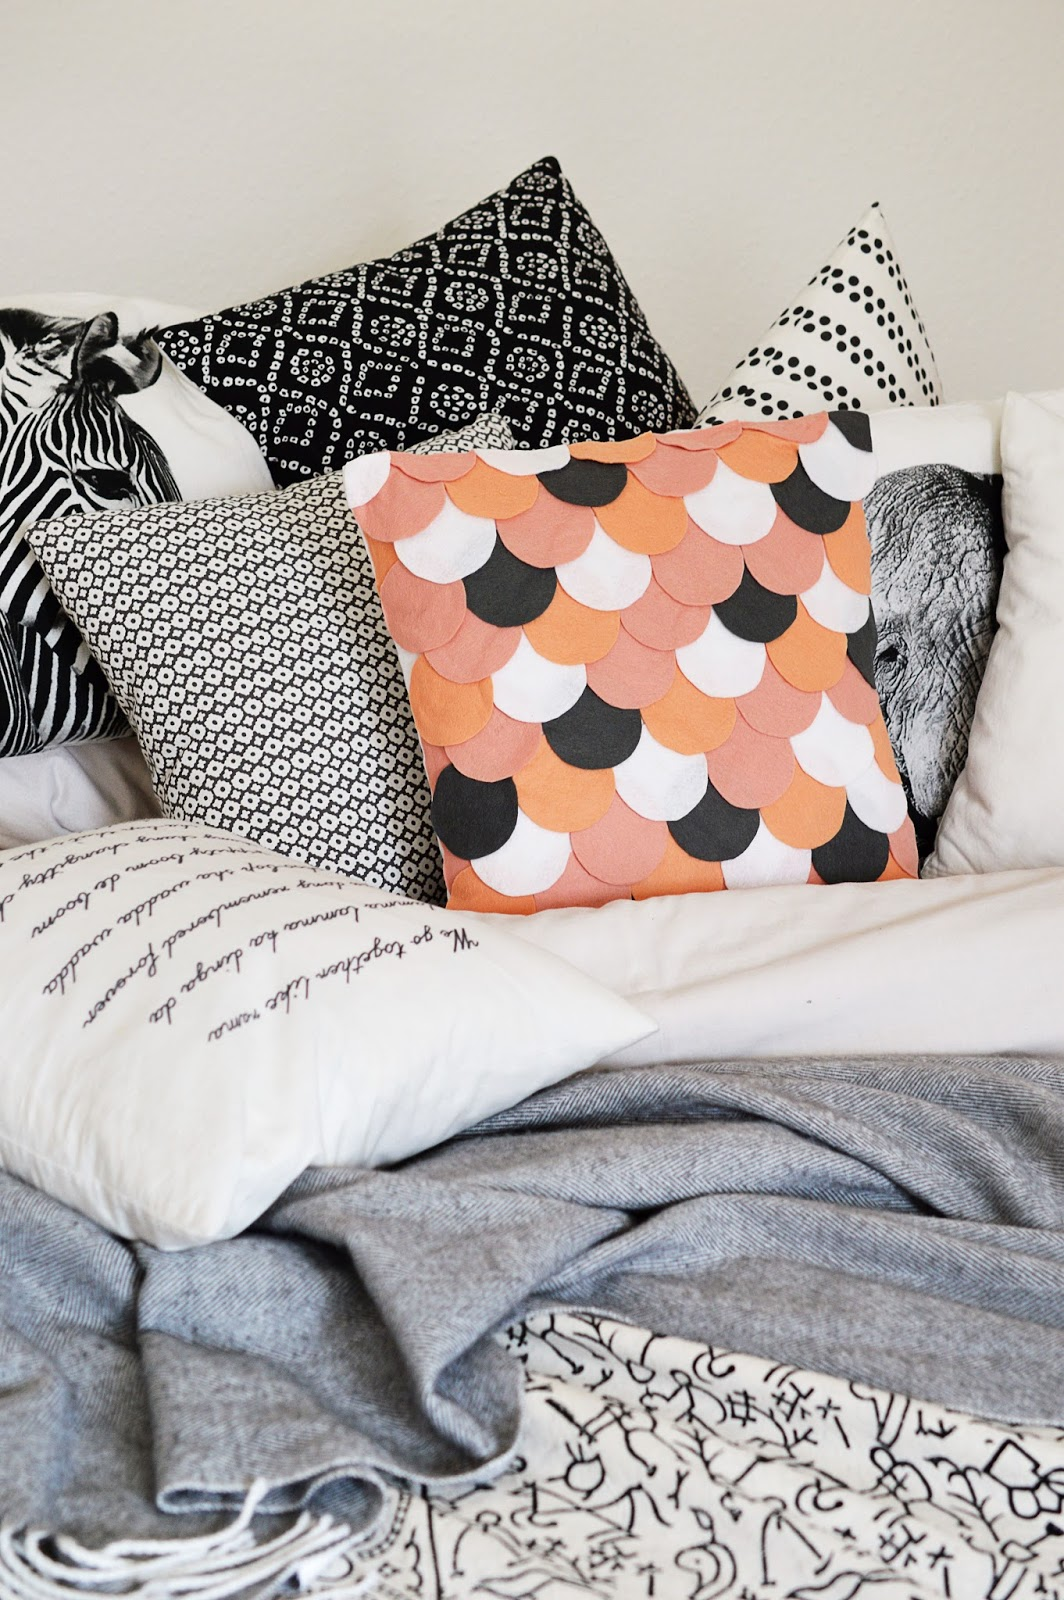 DIY No-Sew Scalloped Pillowcase | Motte's Blog